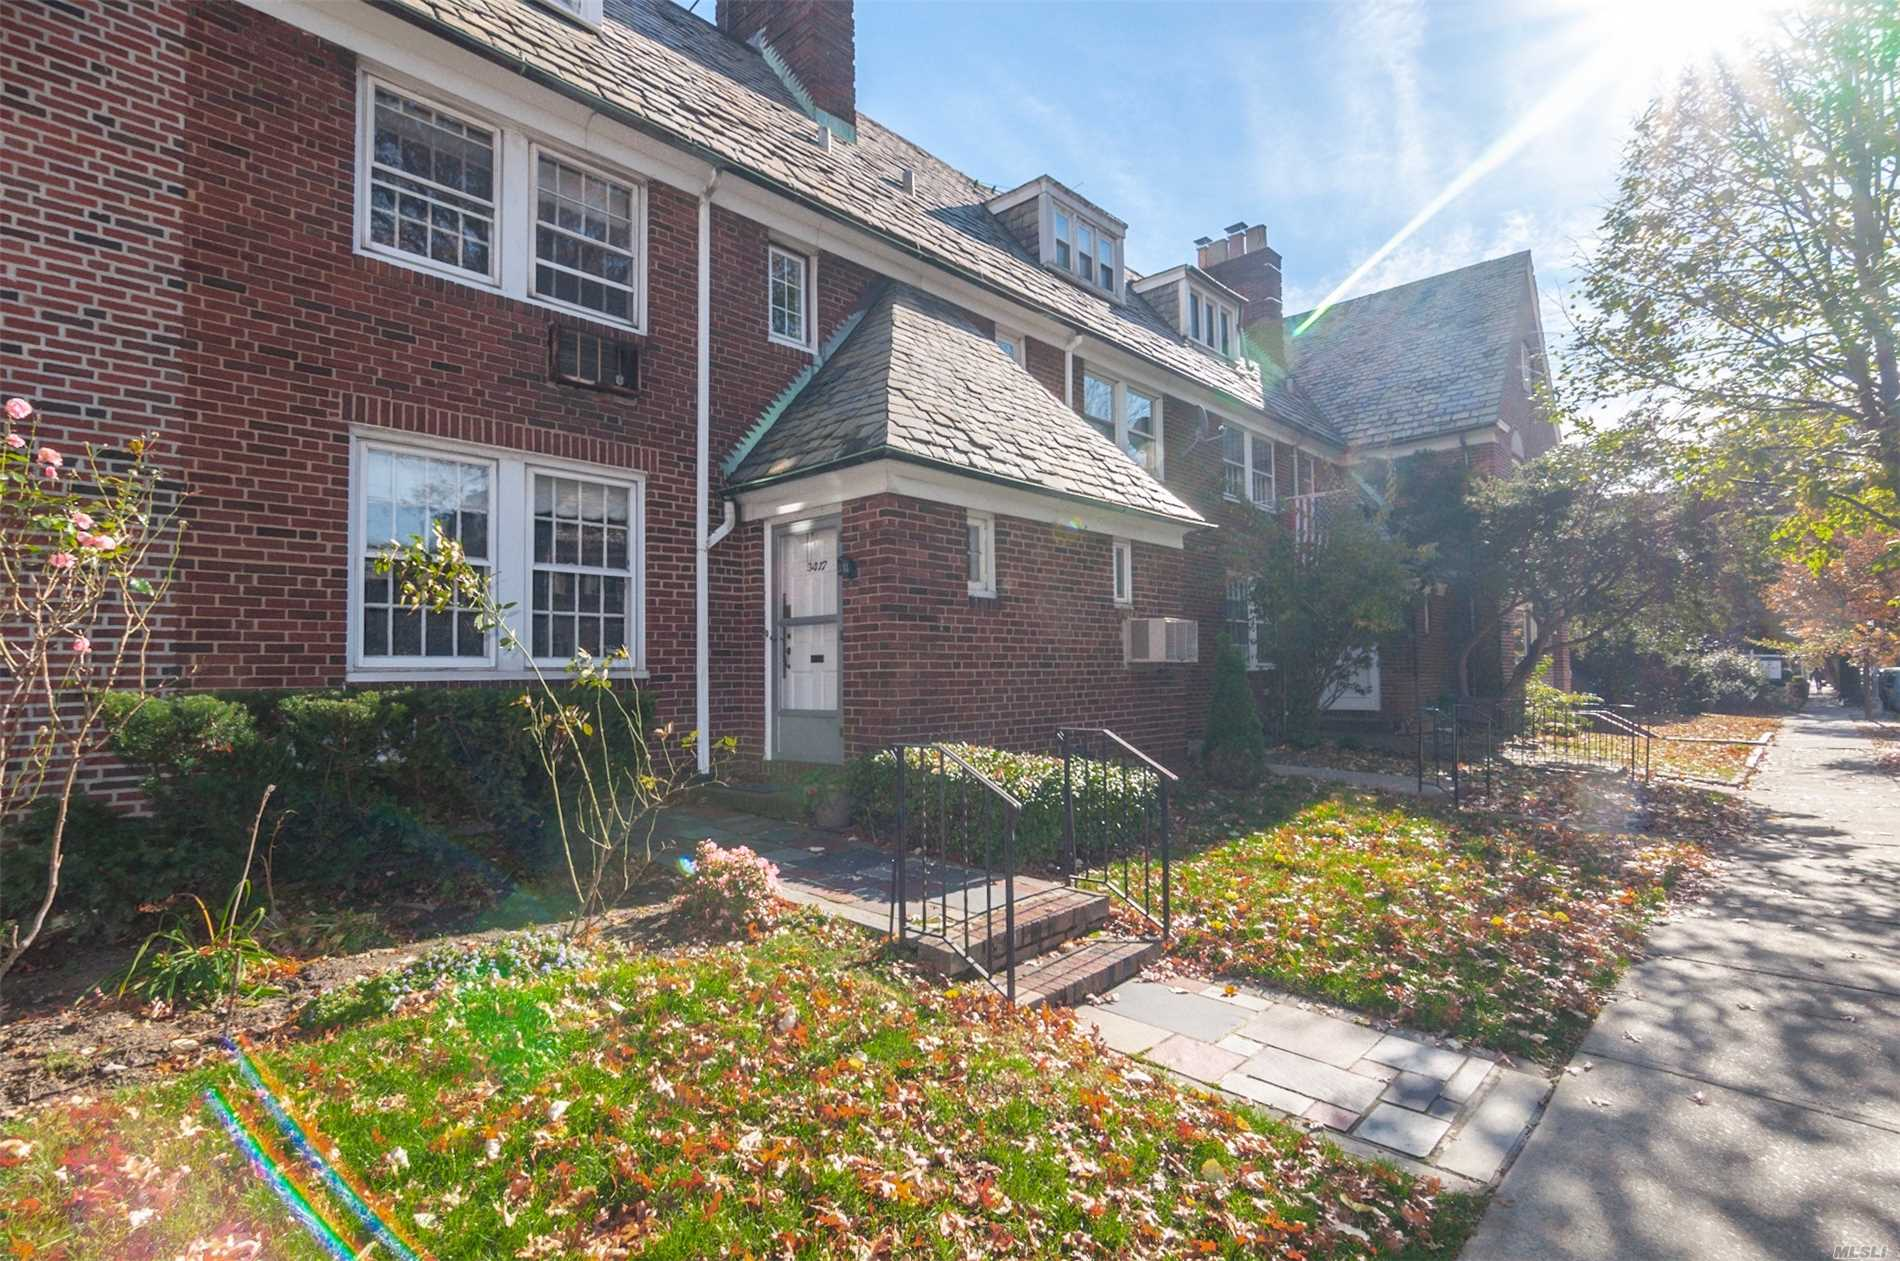 Classic English Garden Row House In Historic Jackson Heights.5 Bedrooms, 3 1/2 Bathrooms, Finished Basement With Full Bath, Working Fireplace, 1 Car Garage, And Additional Parking Outdoor. Close To All Transportation, Shopping, Restaurants, And Airport.